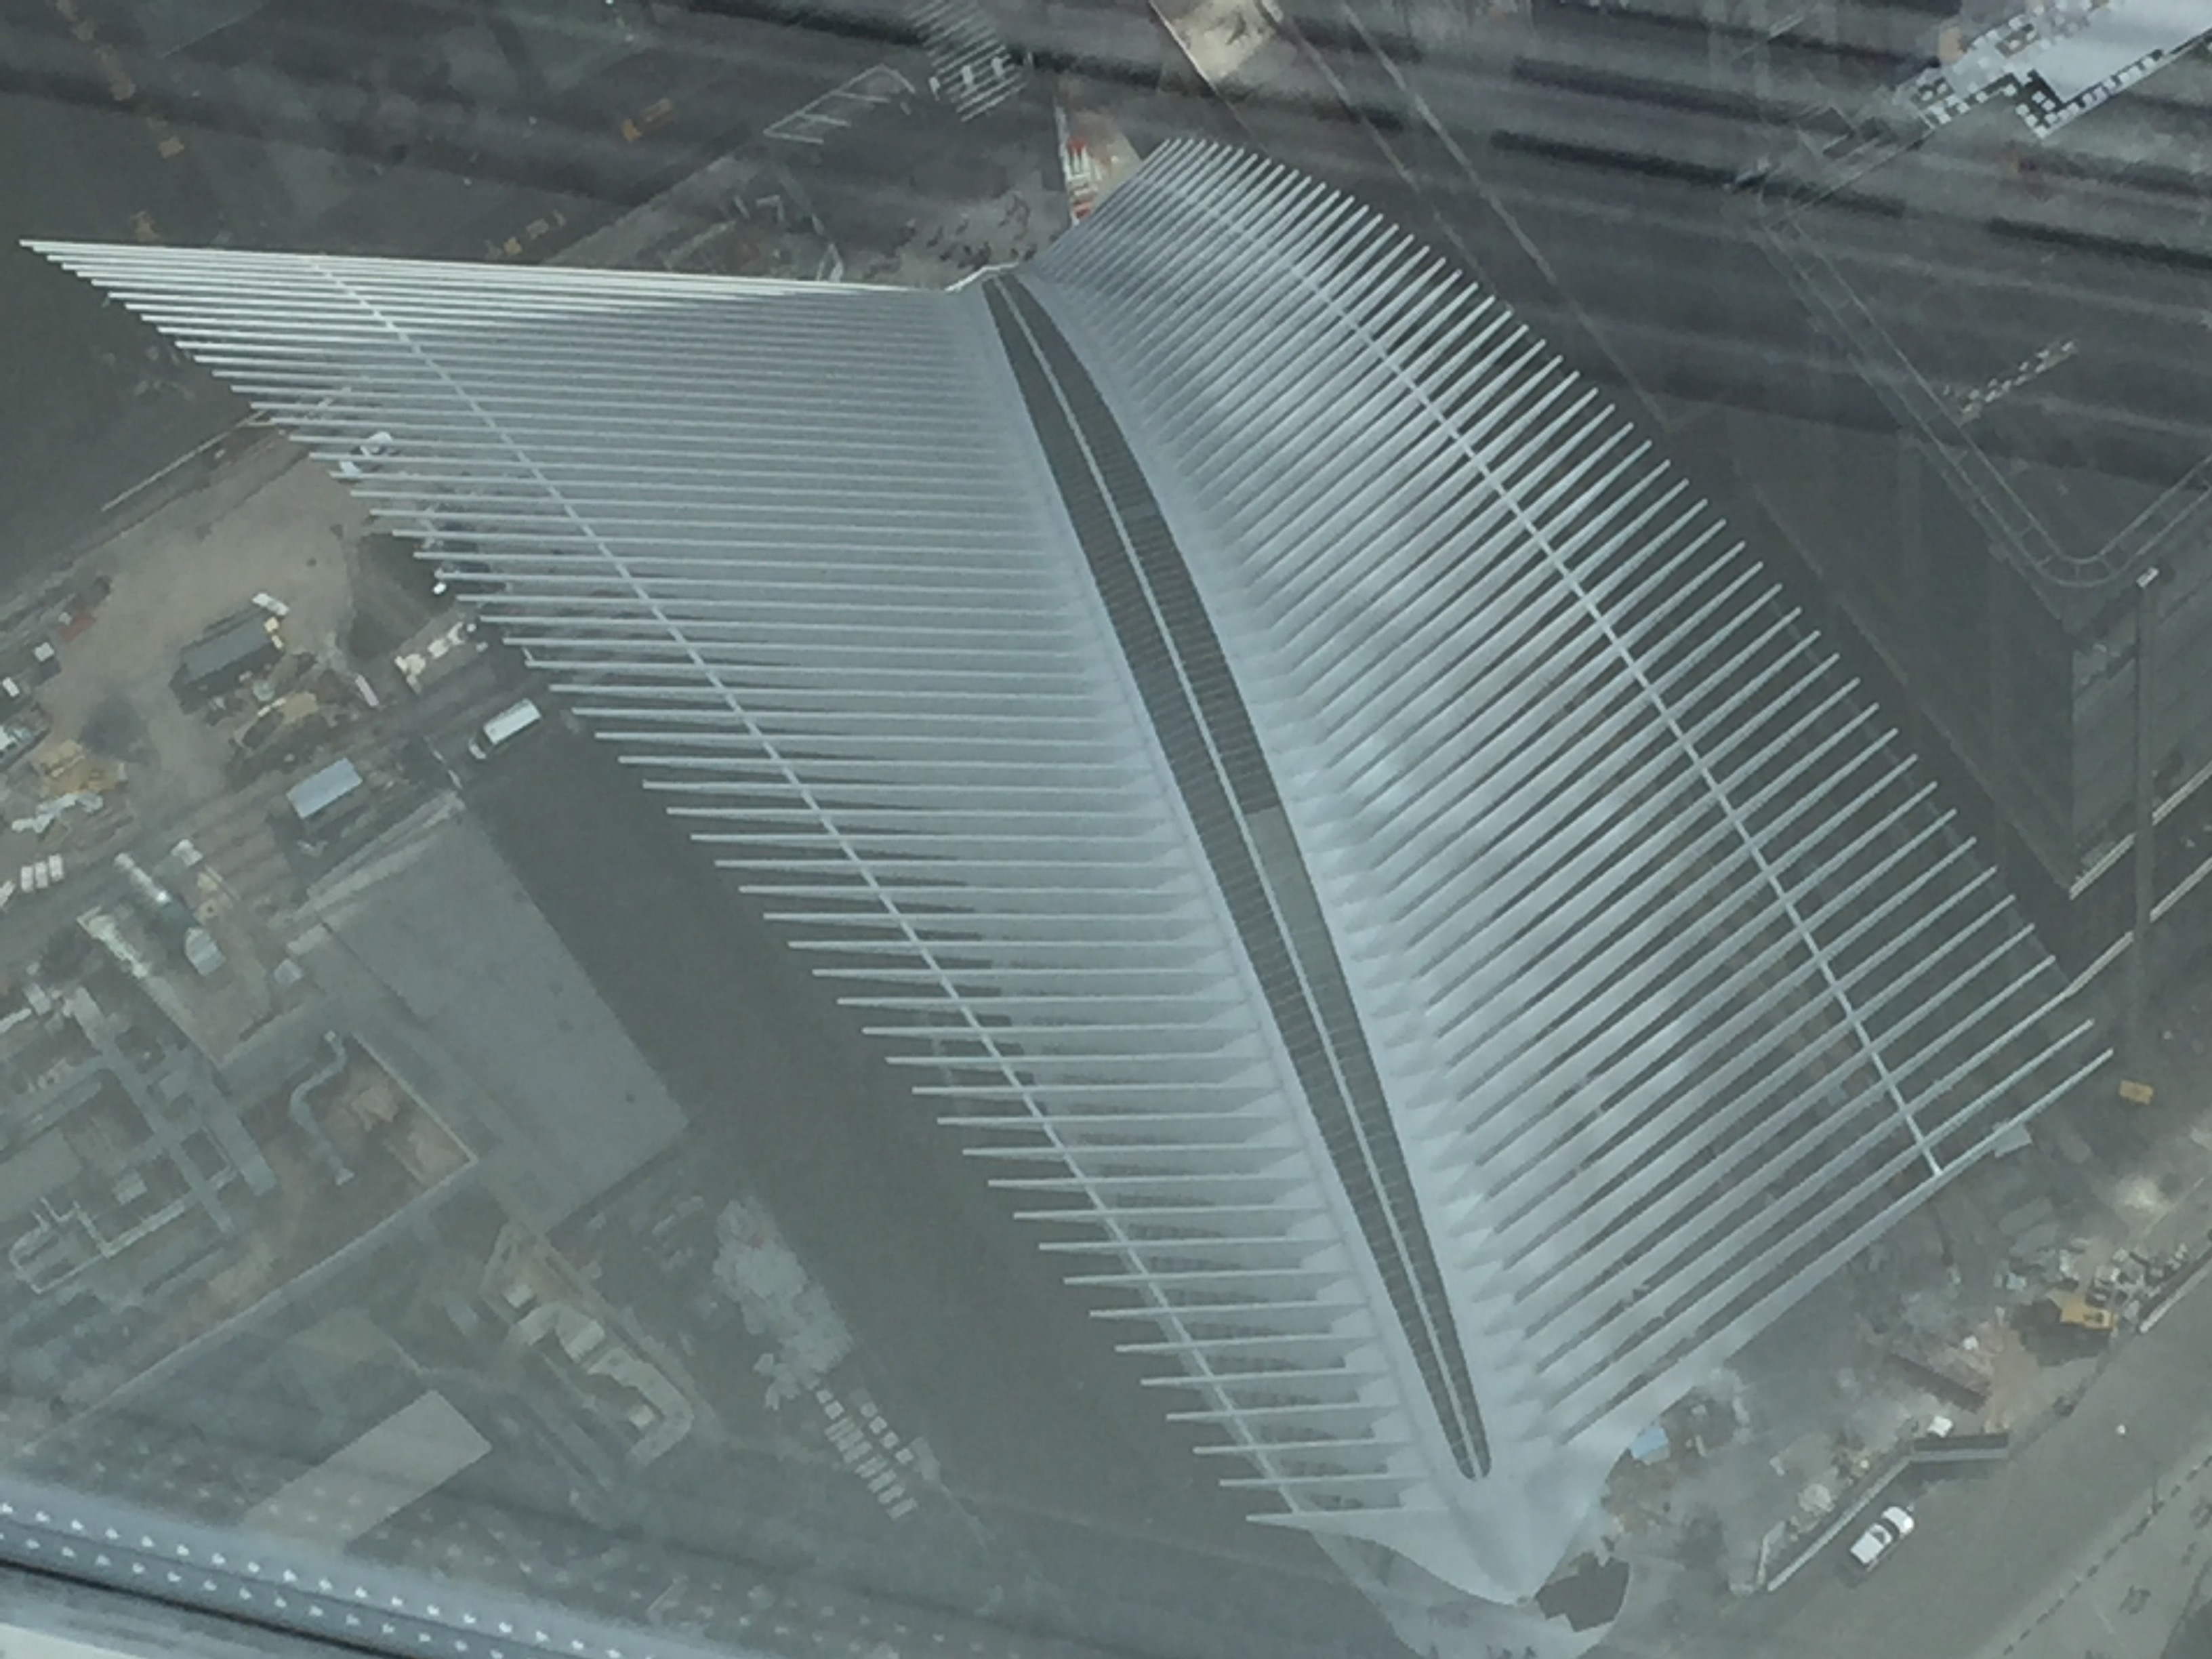 Apple World Trade Center no Oculus de Nova York